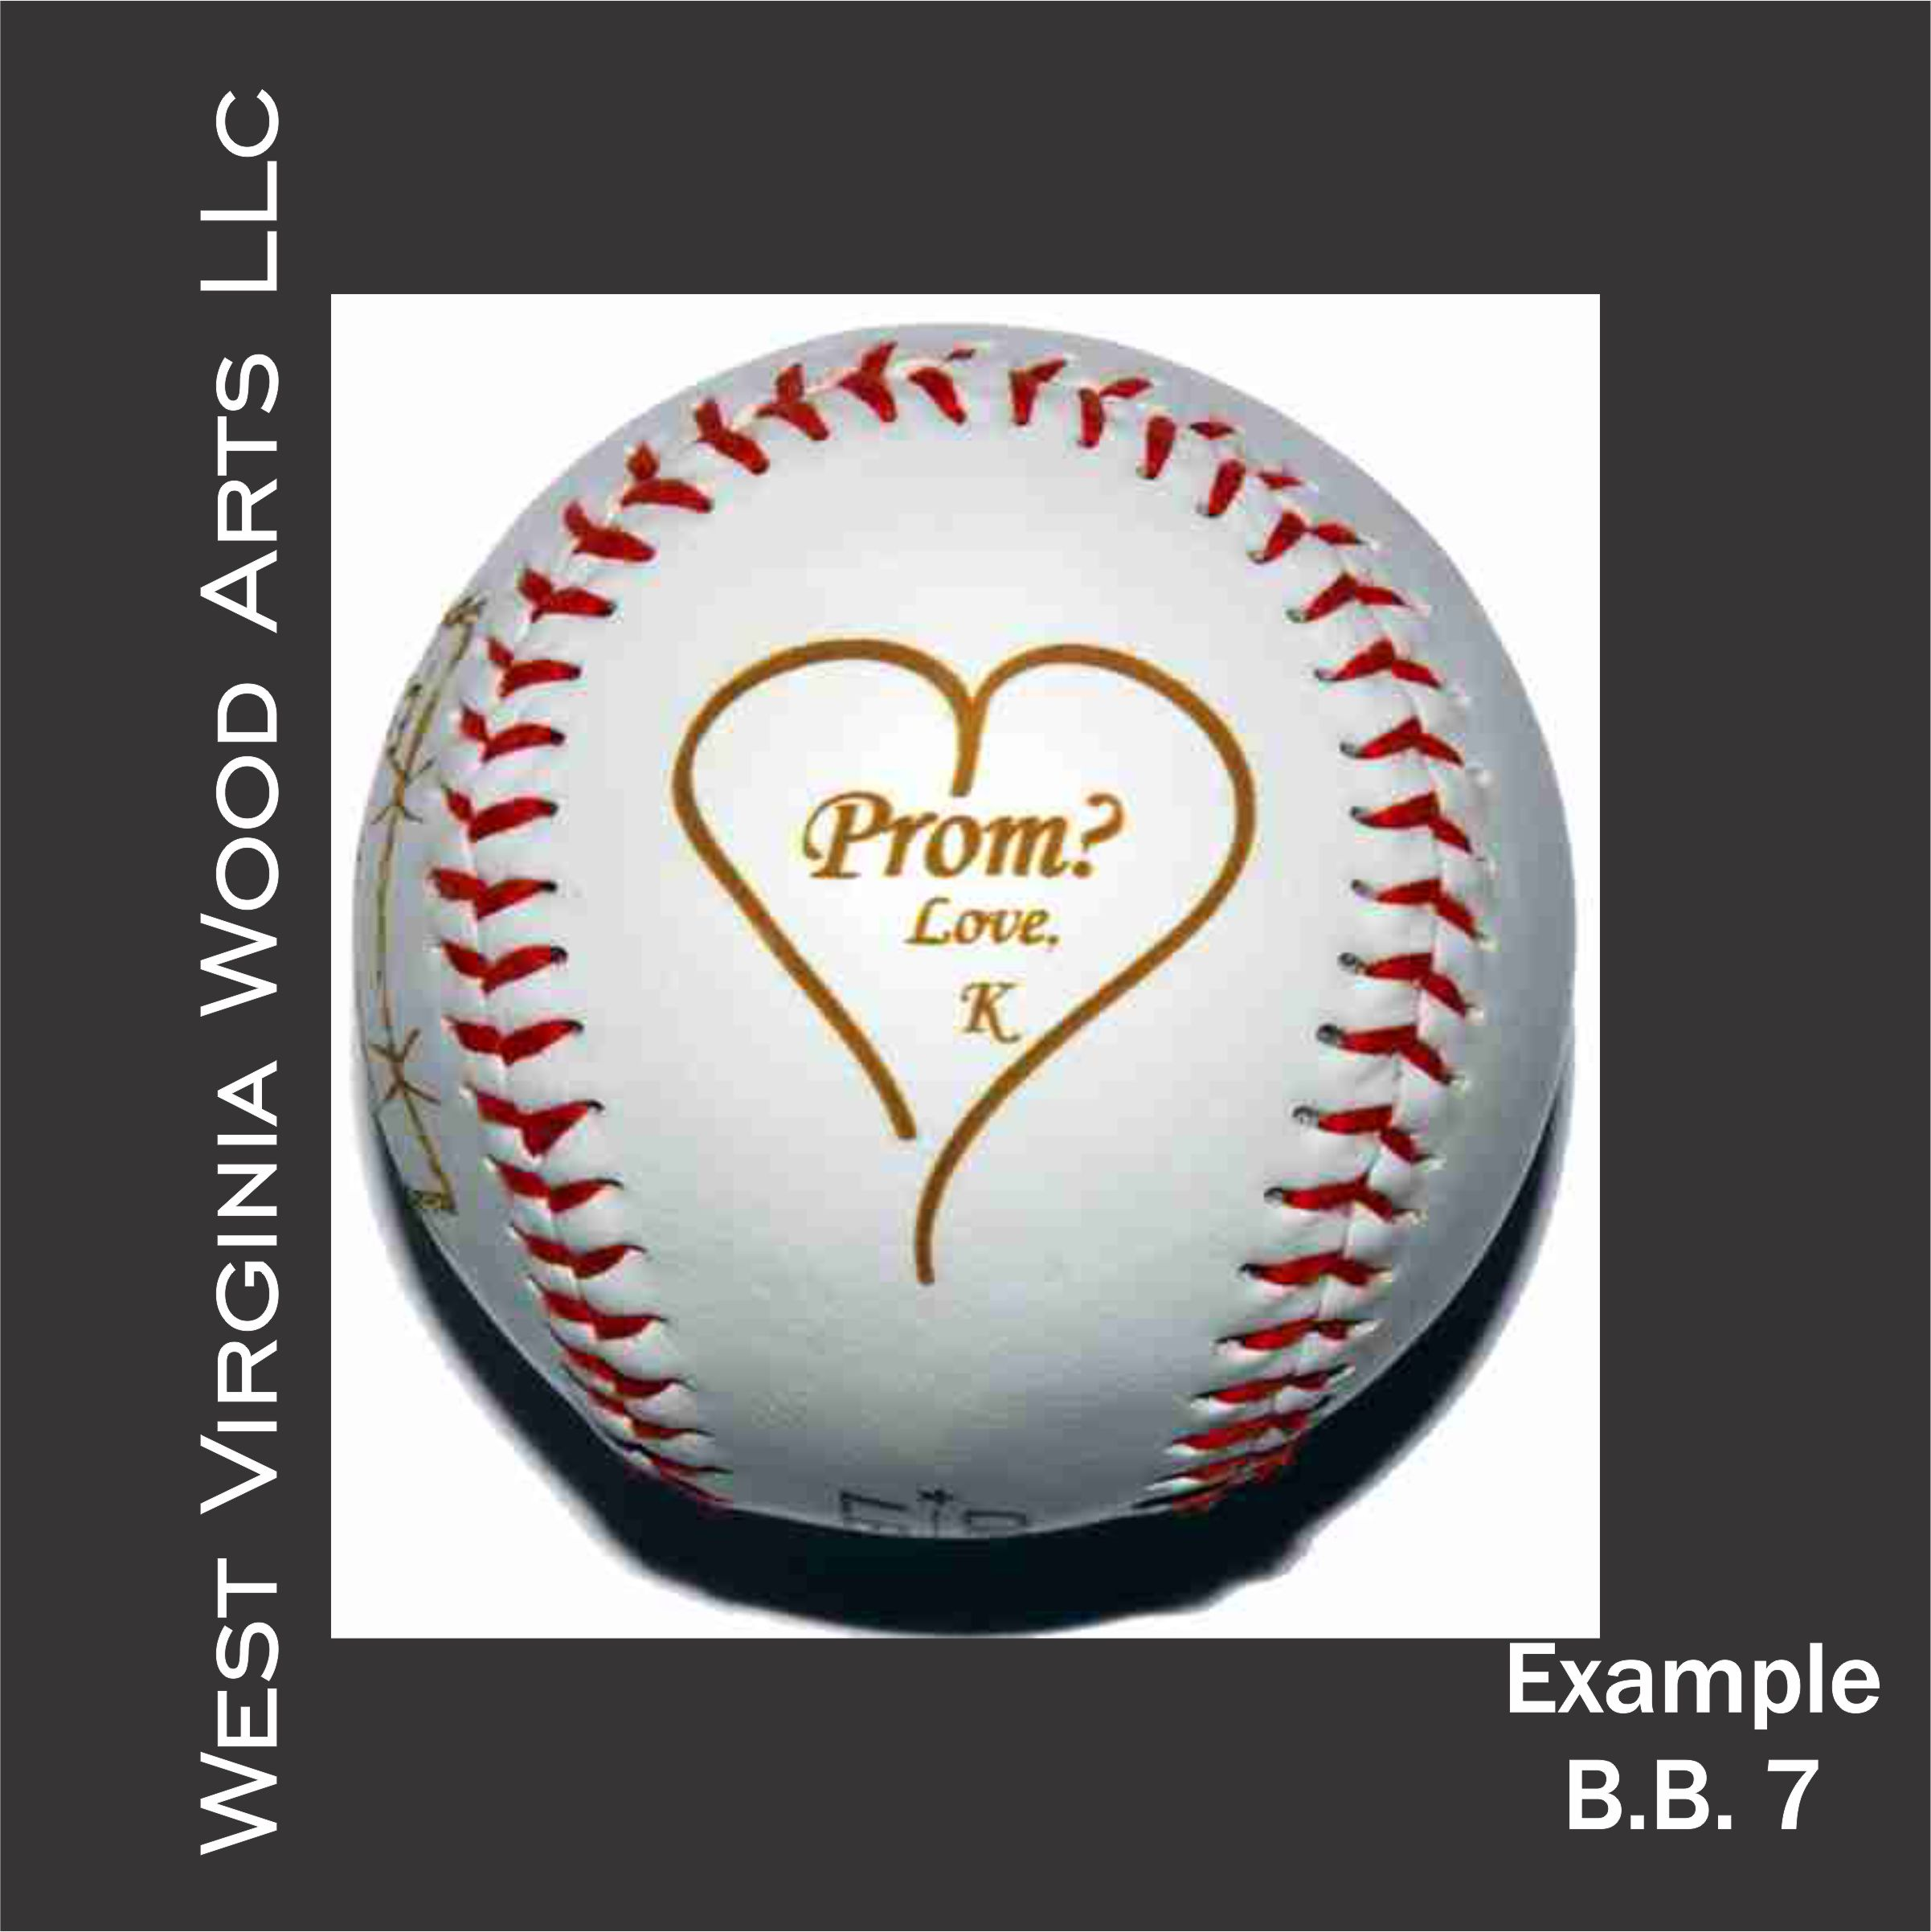 personalized baseball with heart design